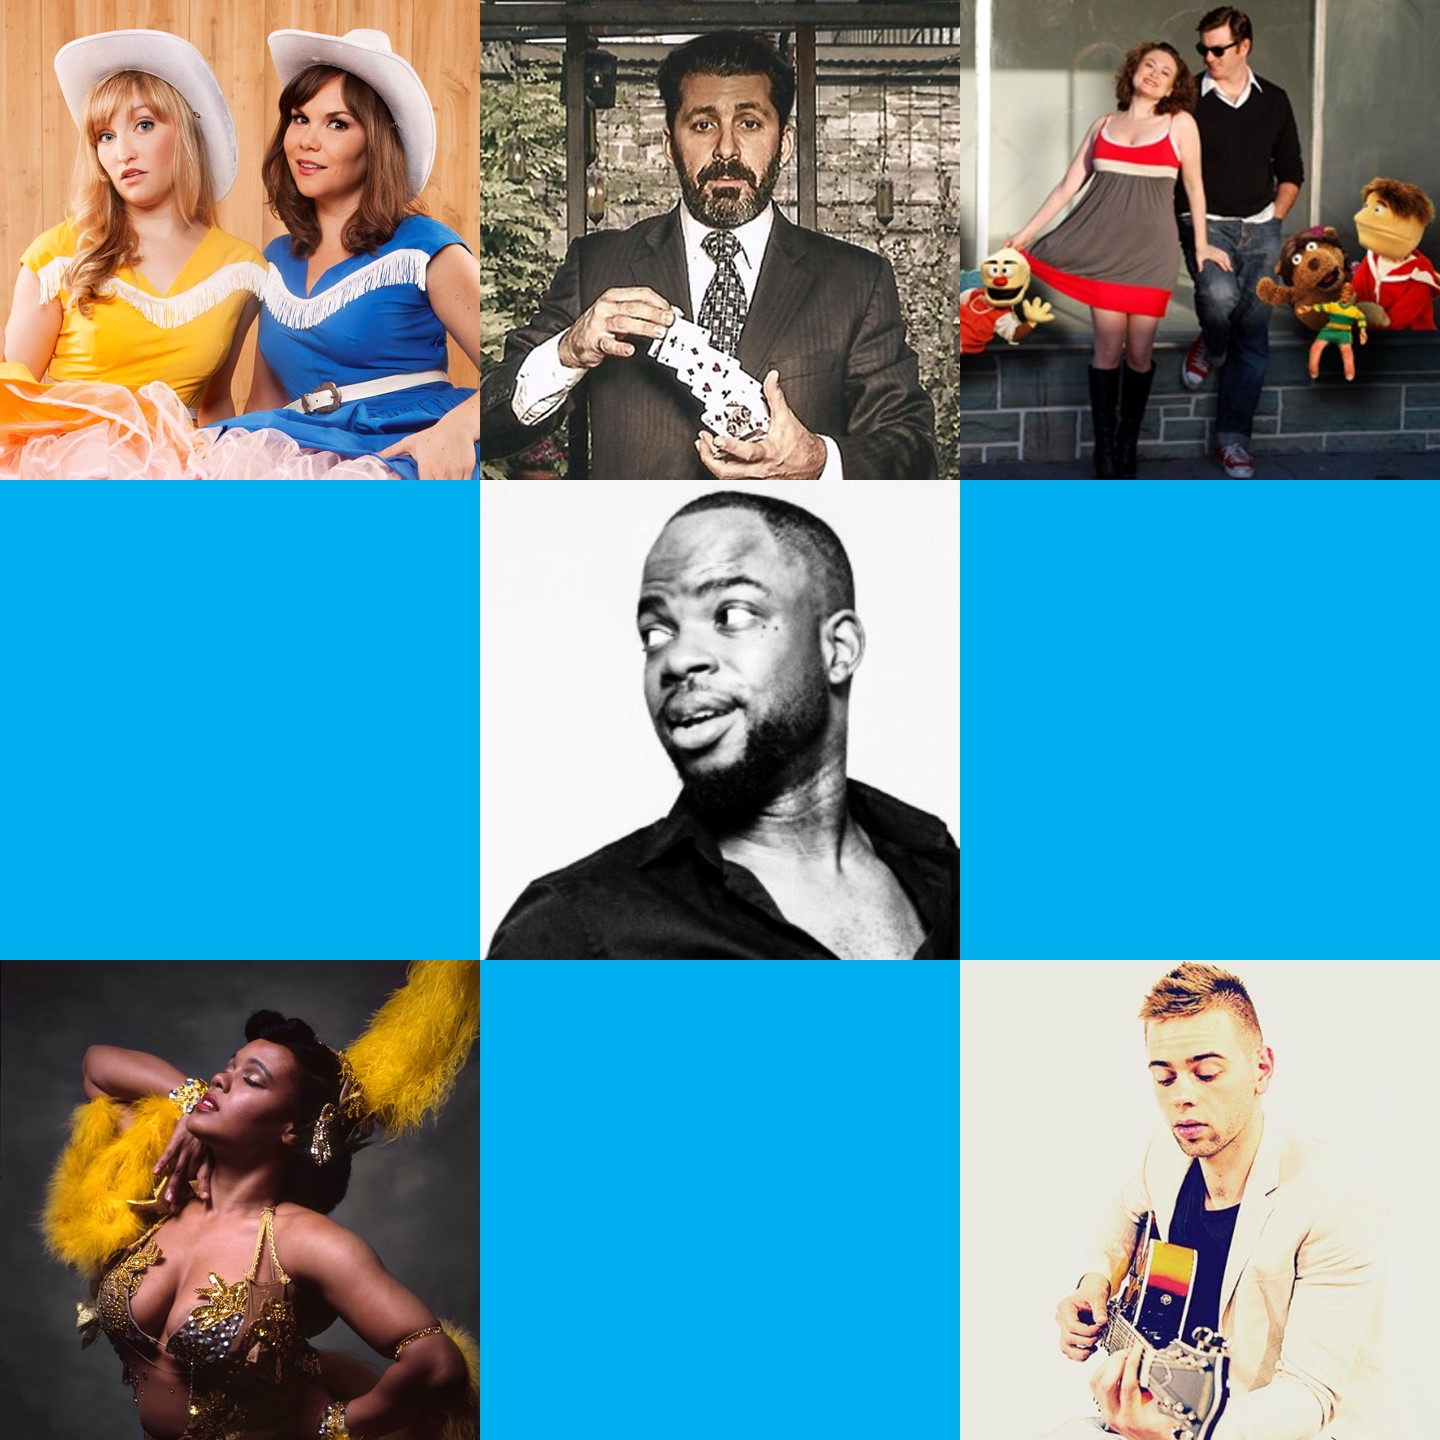 February 9 & 10, 2018   Hosted by Dave Lester  FEATURING: Reformed Whores,(Dolly Parton meets Flight of the Conchords) The Great Dubini, (Close-Up Magic) Genie Adagio, (Blush-inducing Burlesque) Bartholomew J (Soulful Singer-Songwriter) The Josh and Tamra Show  (Puppet Improv Pioneers)